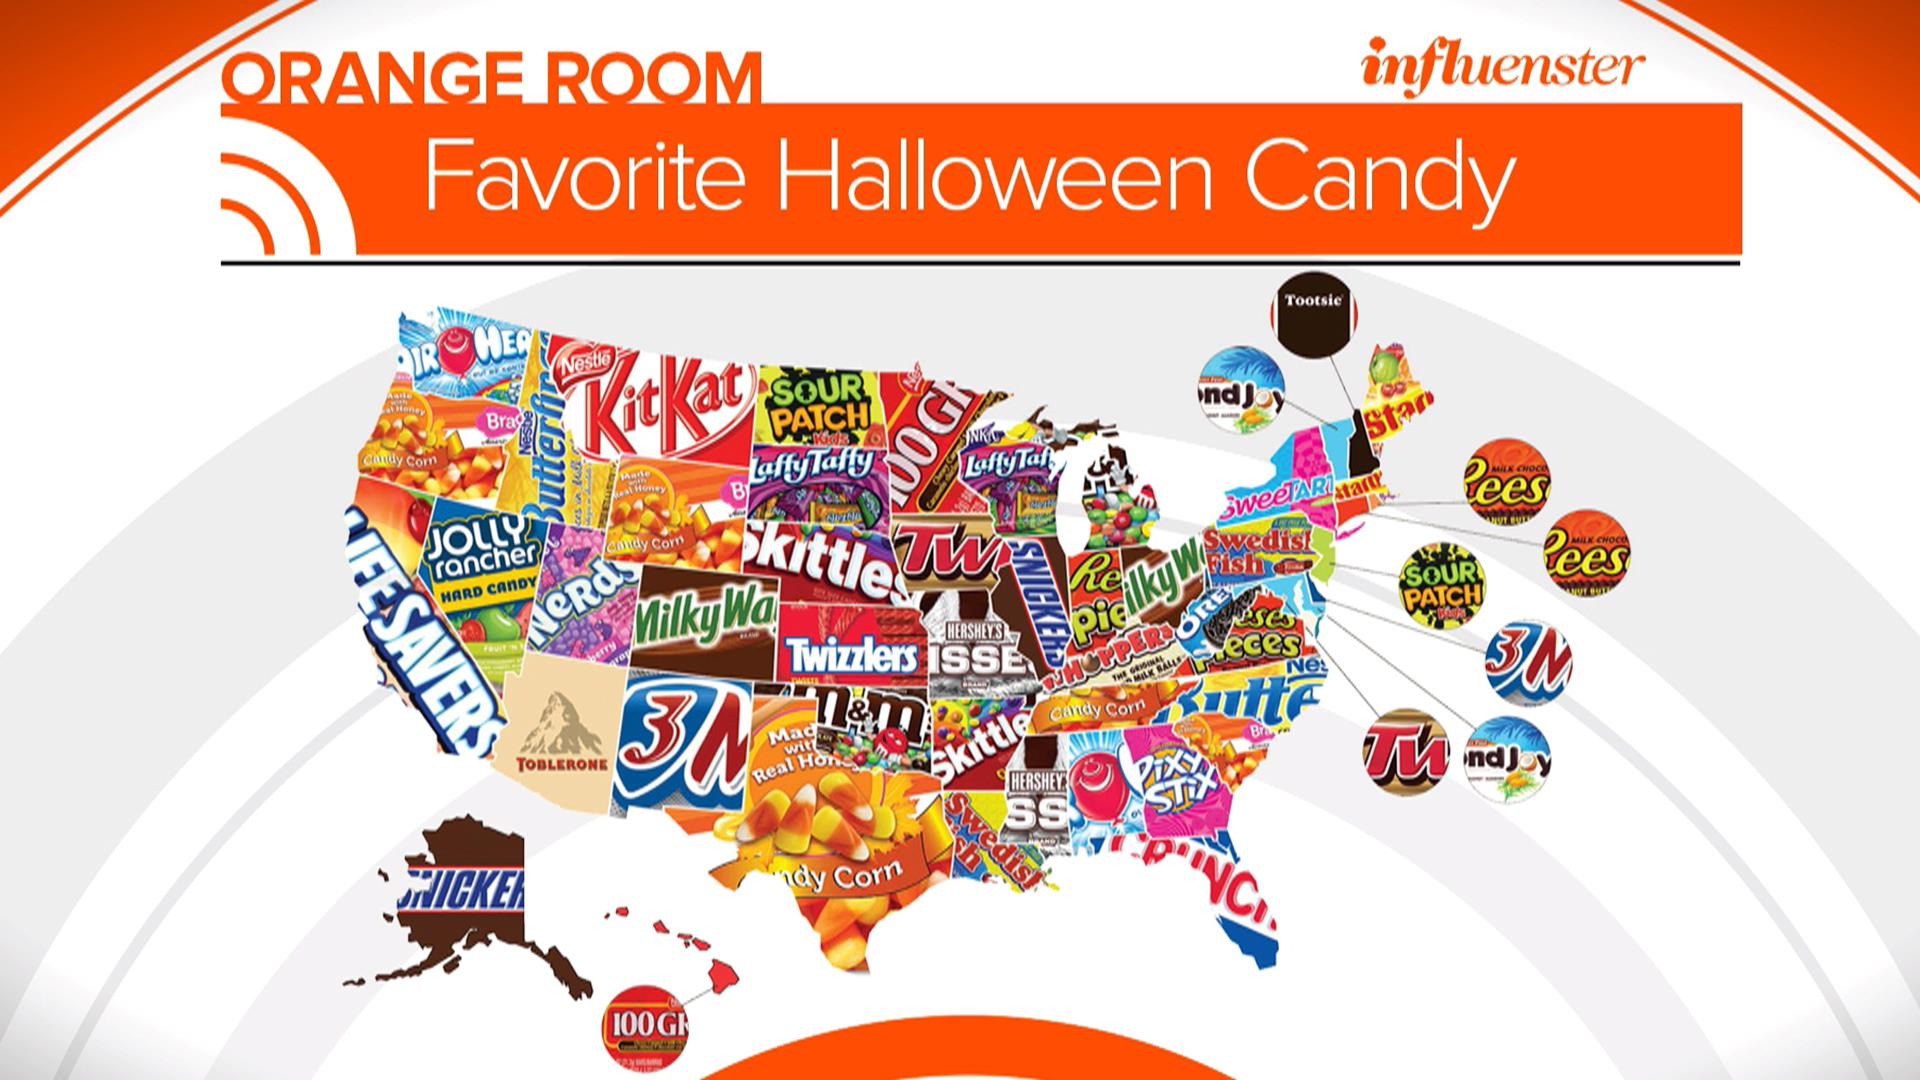 most popular candy in america